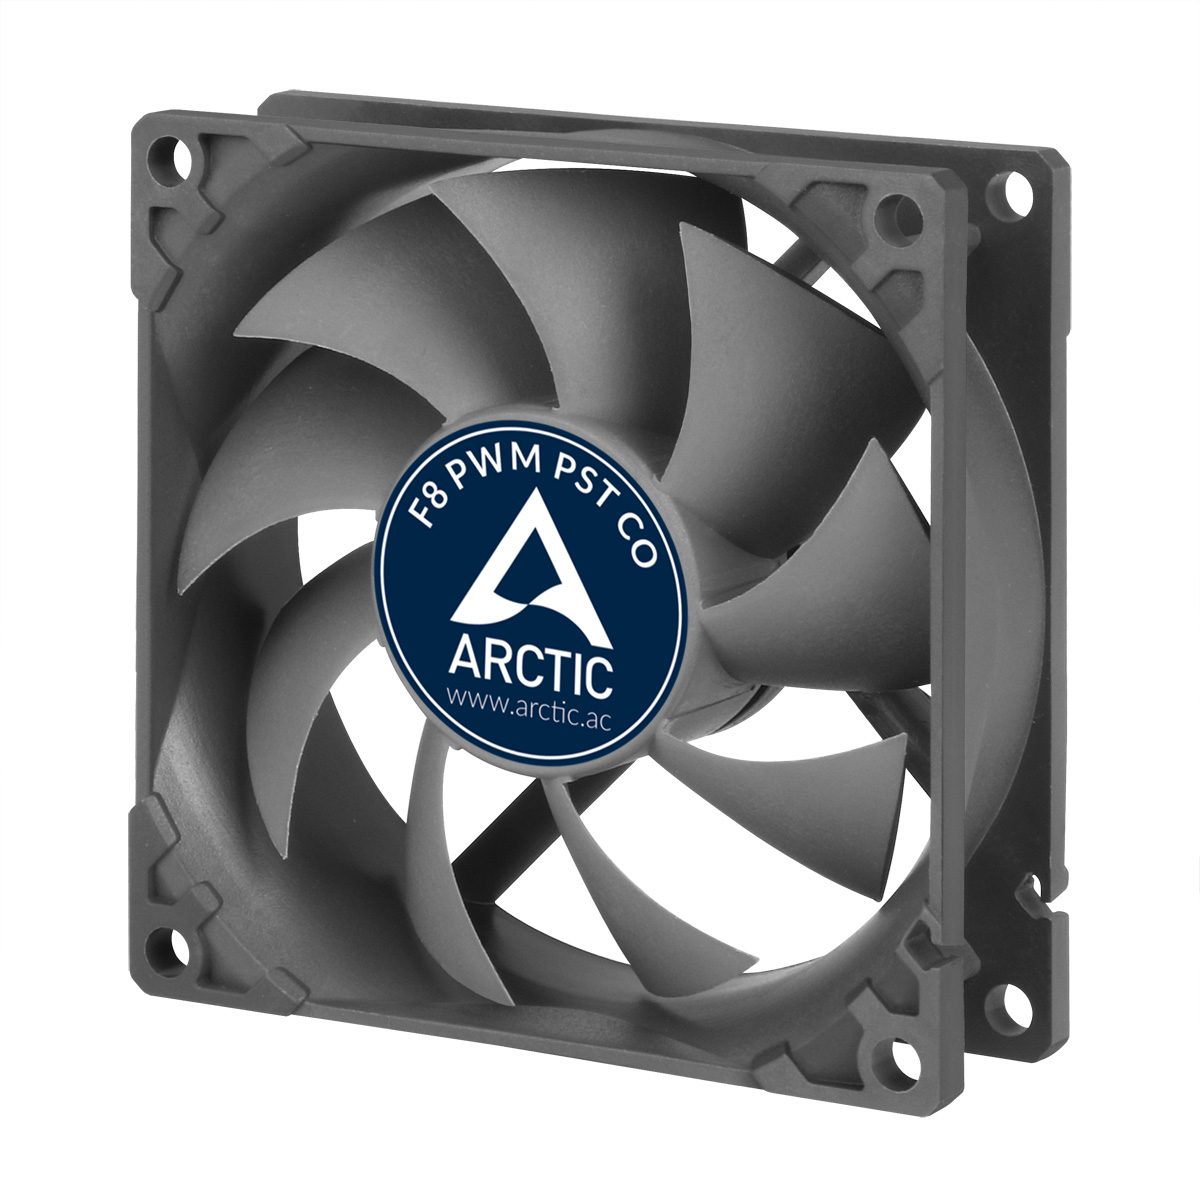 ARCTIC F8 PWM PST CO 80mm PWM with PST Case Fan for Continuous Operation